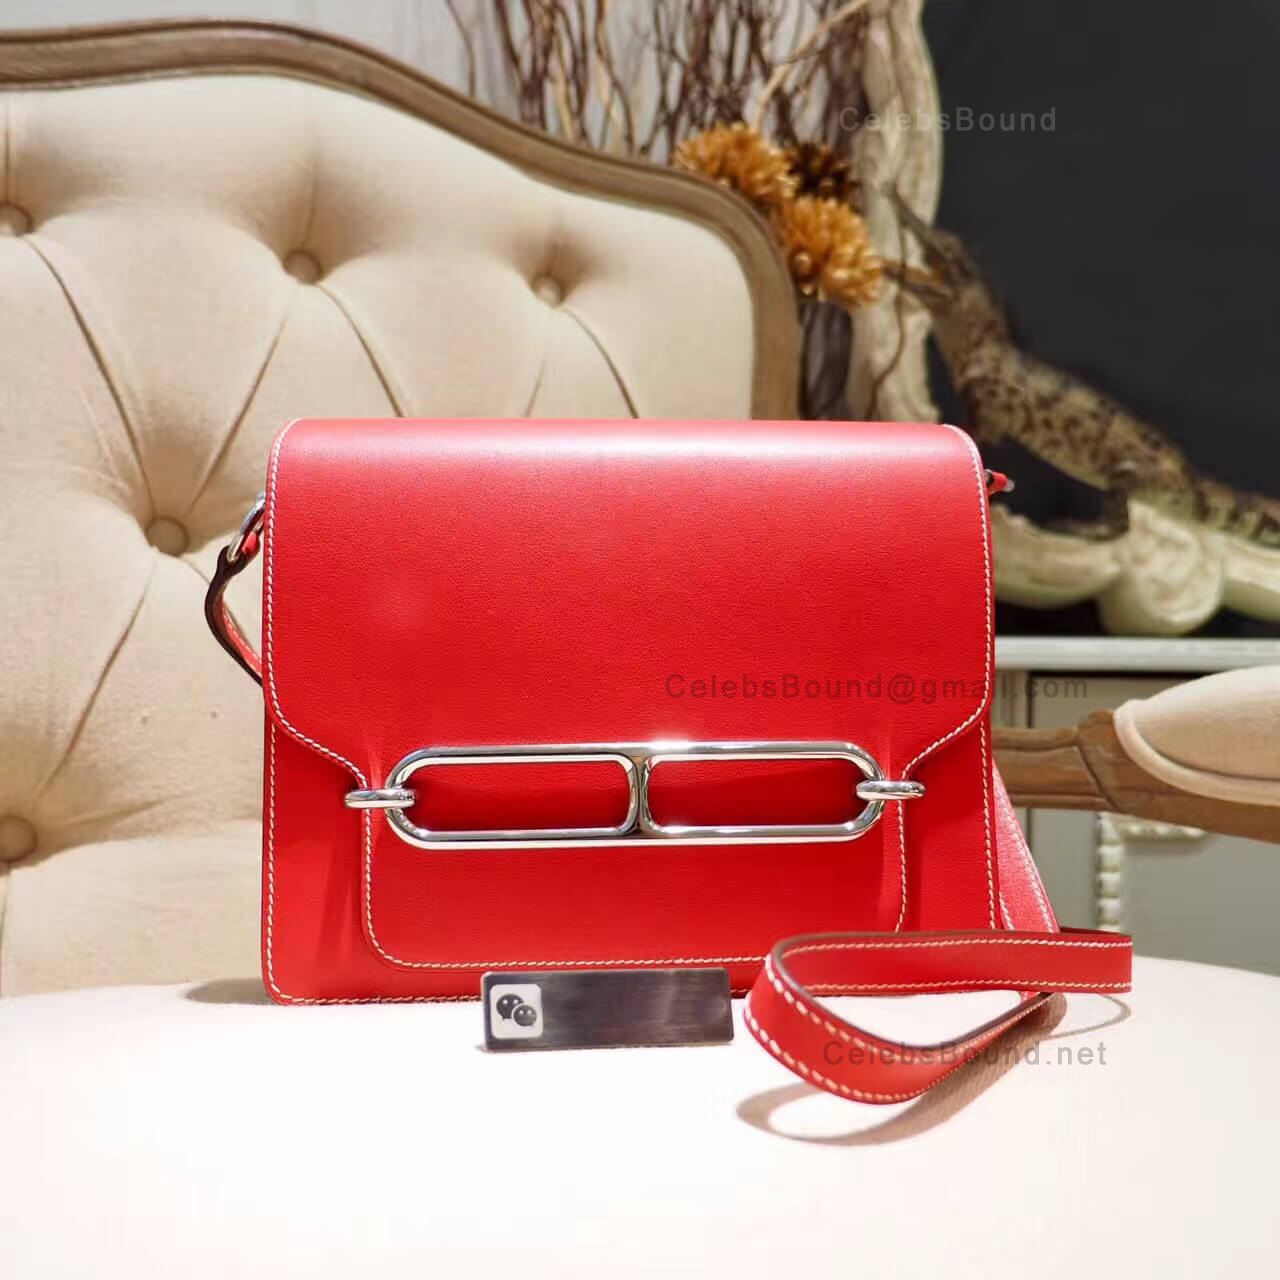 Hermes Roulis 23 Bag White Stitching in s5 Rouge Tomate Evercolor PHW